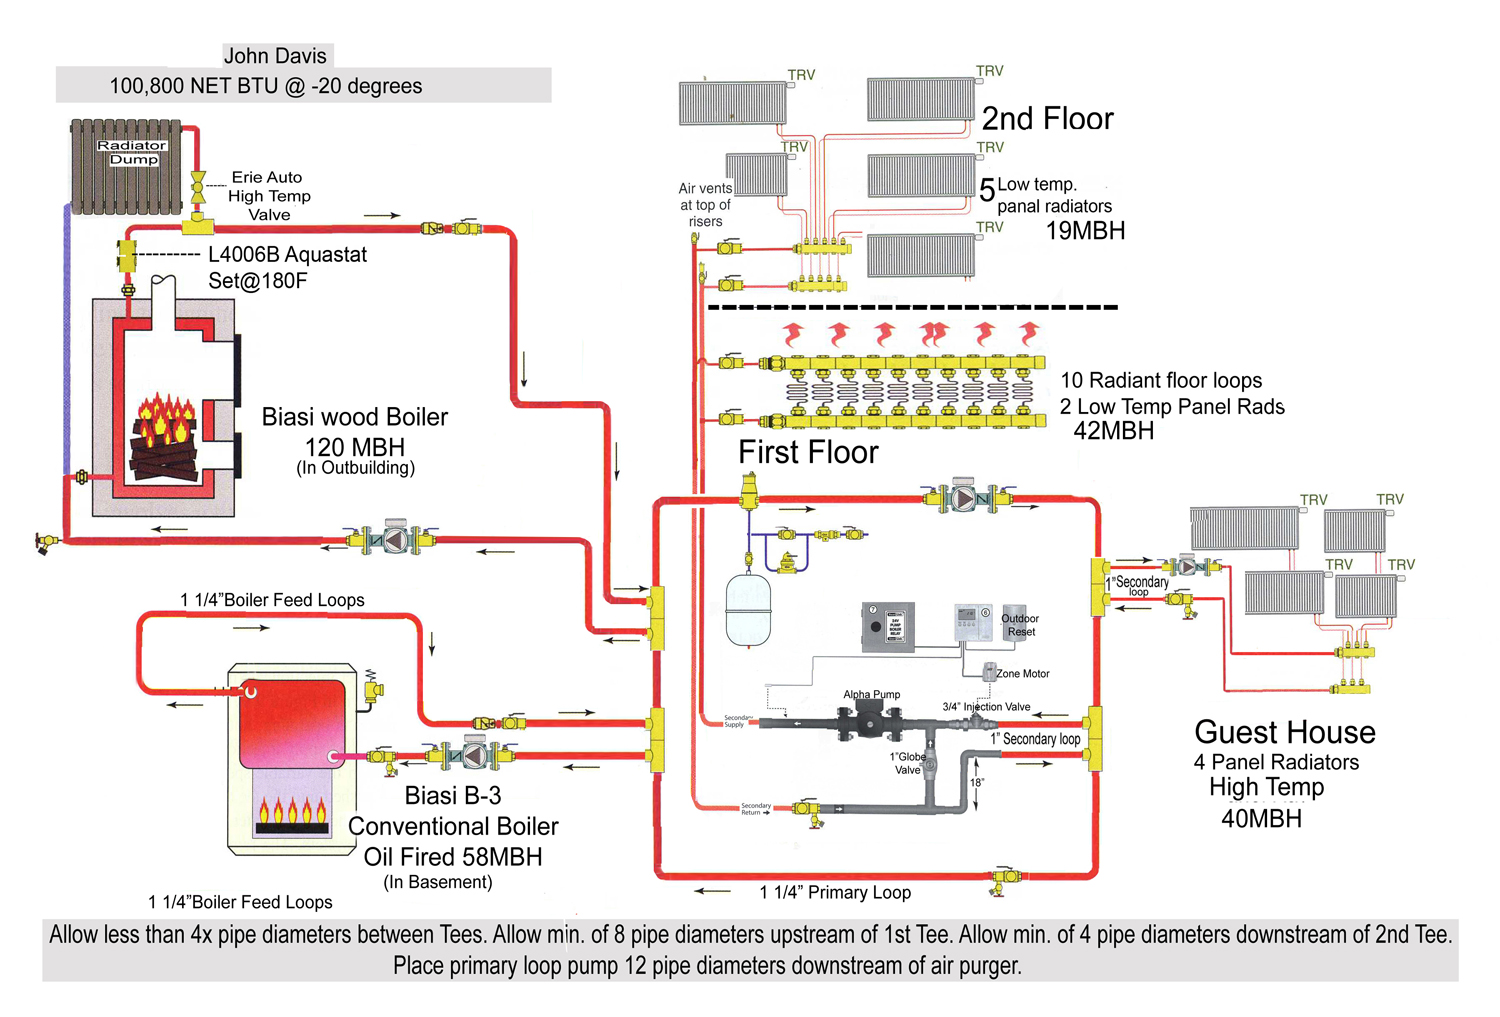 Heating Zone Valve Wiring Diagram on honeywell primary control wiring diagram